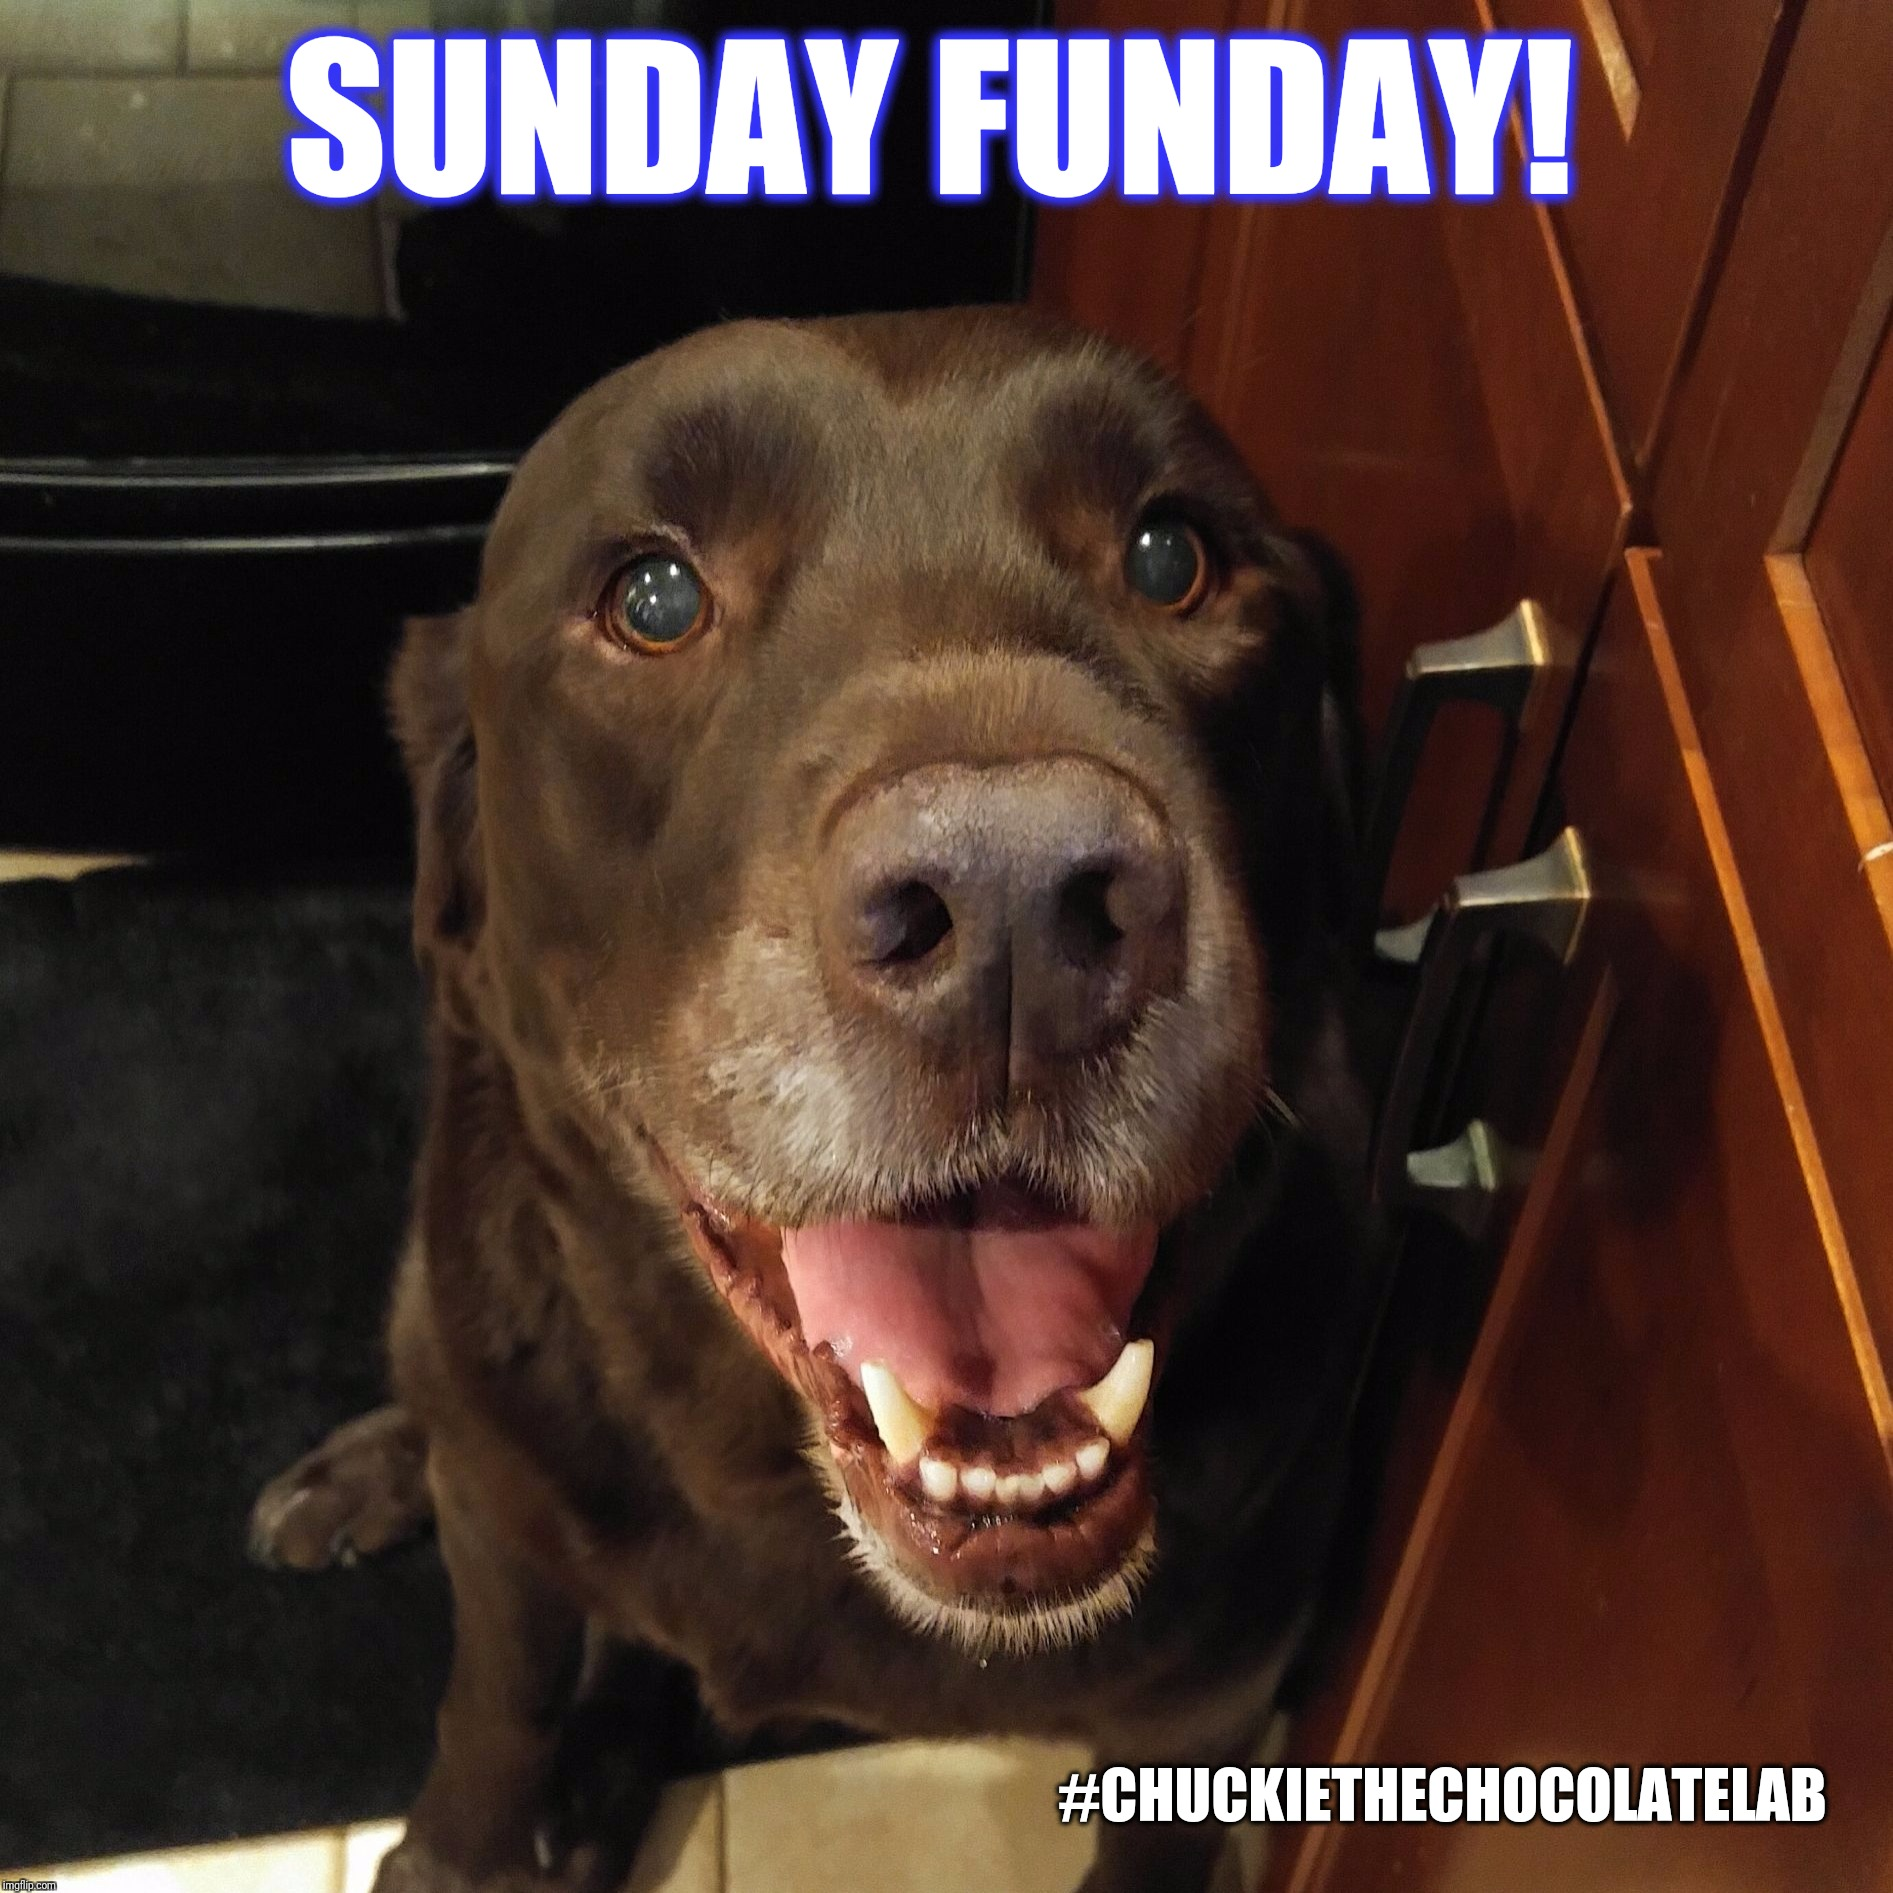 Sunday Funday!  | SUNDAY FUNDAY! #CHUCKIETHECHOCOLATELAB | image tagged in chuckie the chocolate lab teamchuckie,sunday funday,memes,dogs,smile,labrador | made w/ Imgflip meme maker